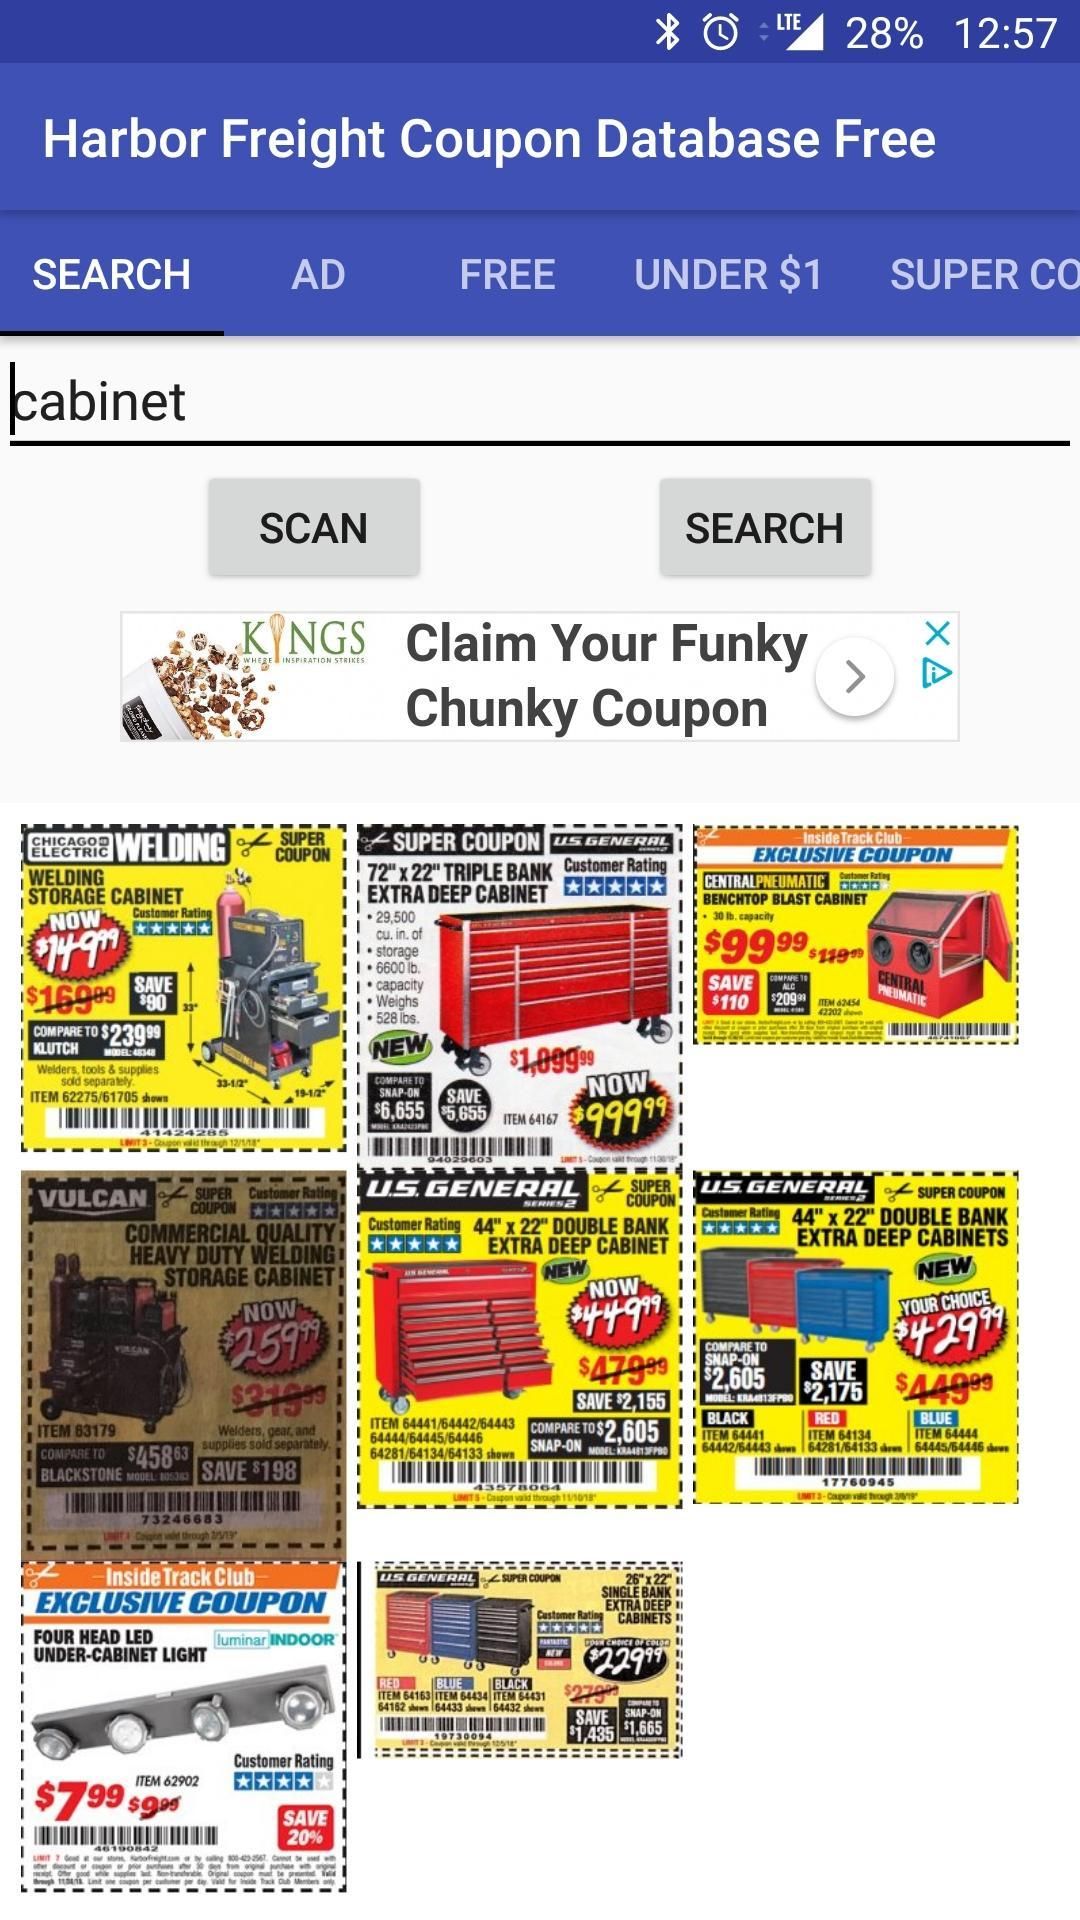 Harbor Freight Coupon Database - HFQPDB for Android - APK Download